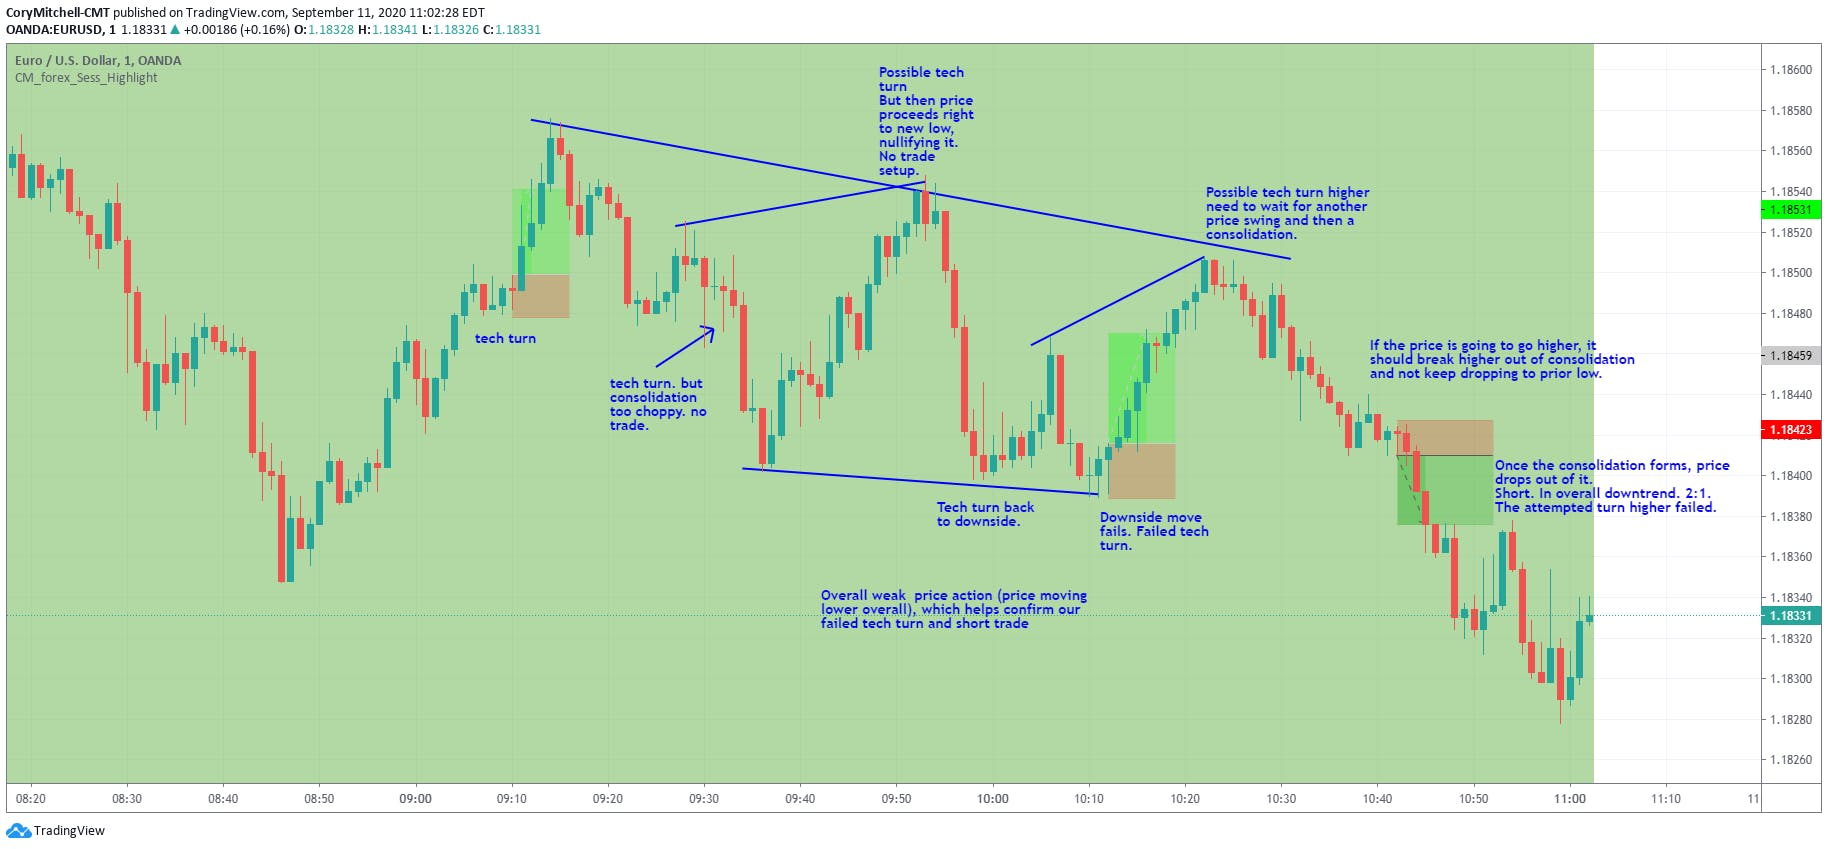 technical turnaround and failed technical turnaround strategies with descriptions on chart